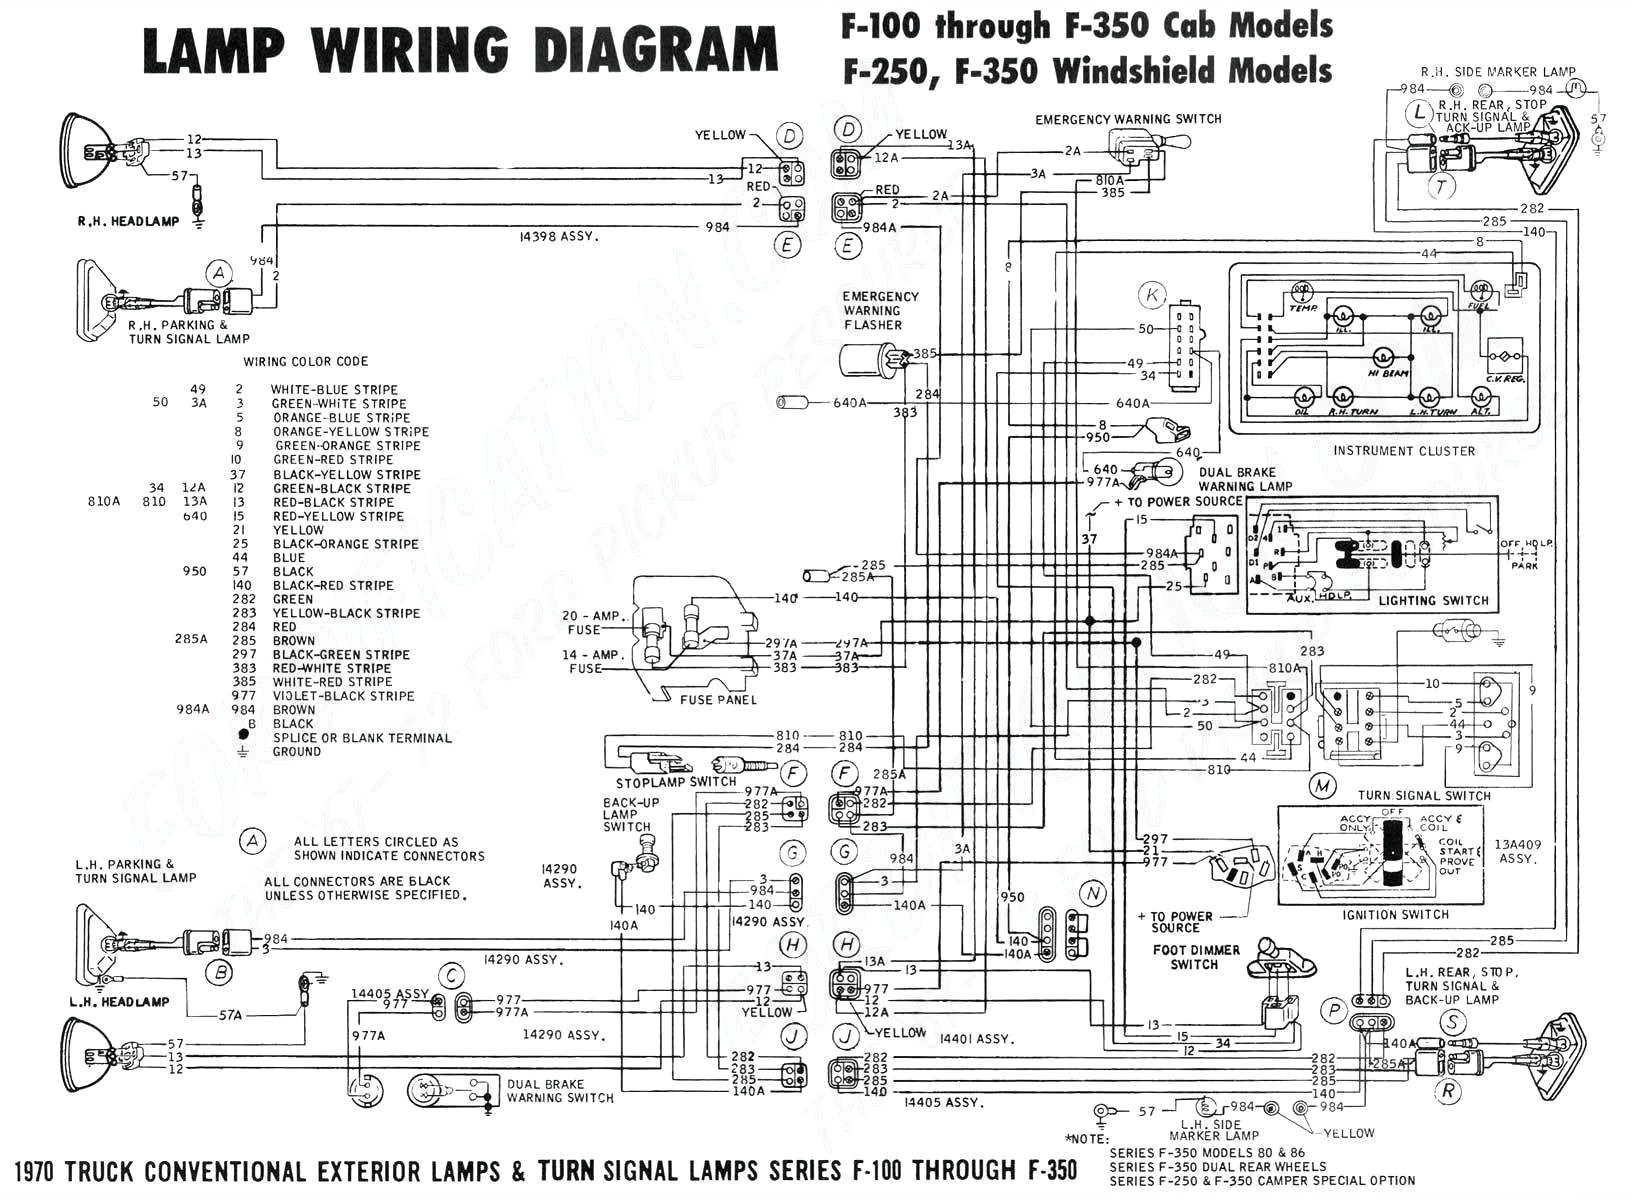 fuse diagram besides boat wiring fuse panel diagram besides basic fuse box diagram furthermore ford 351